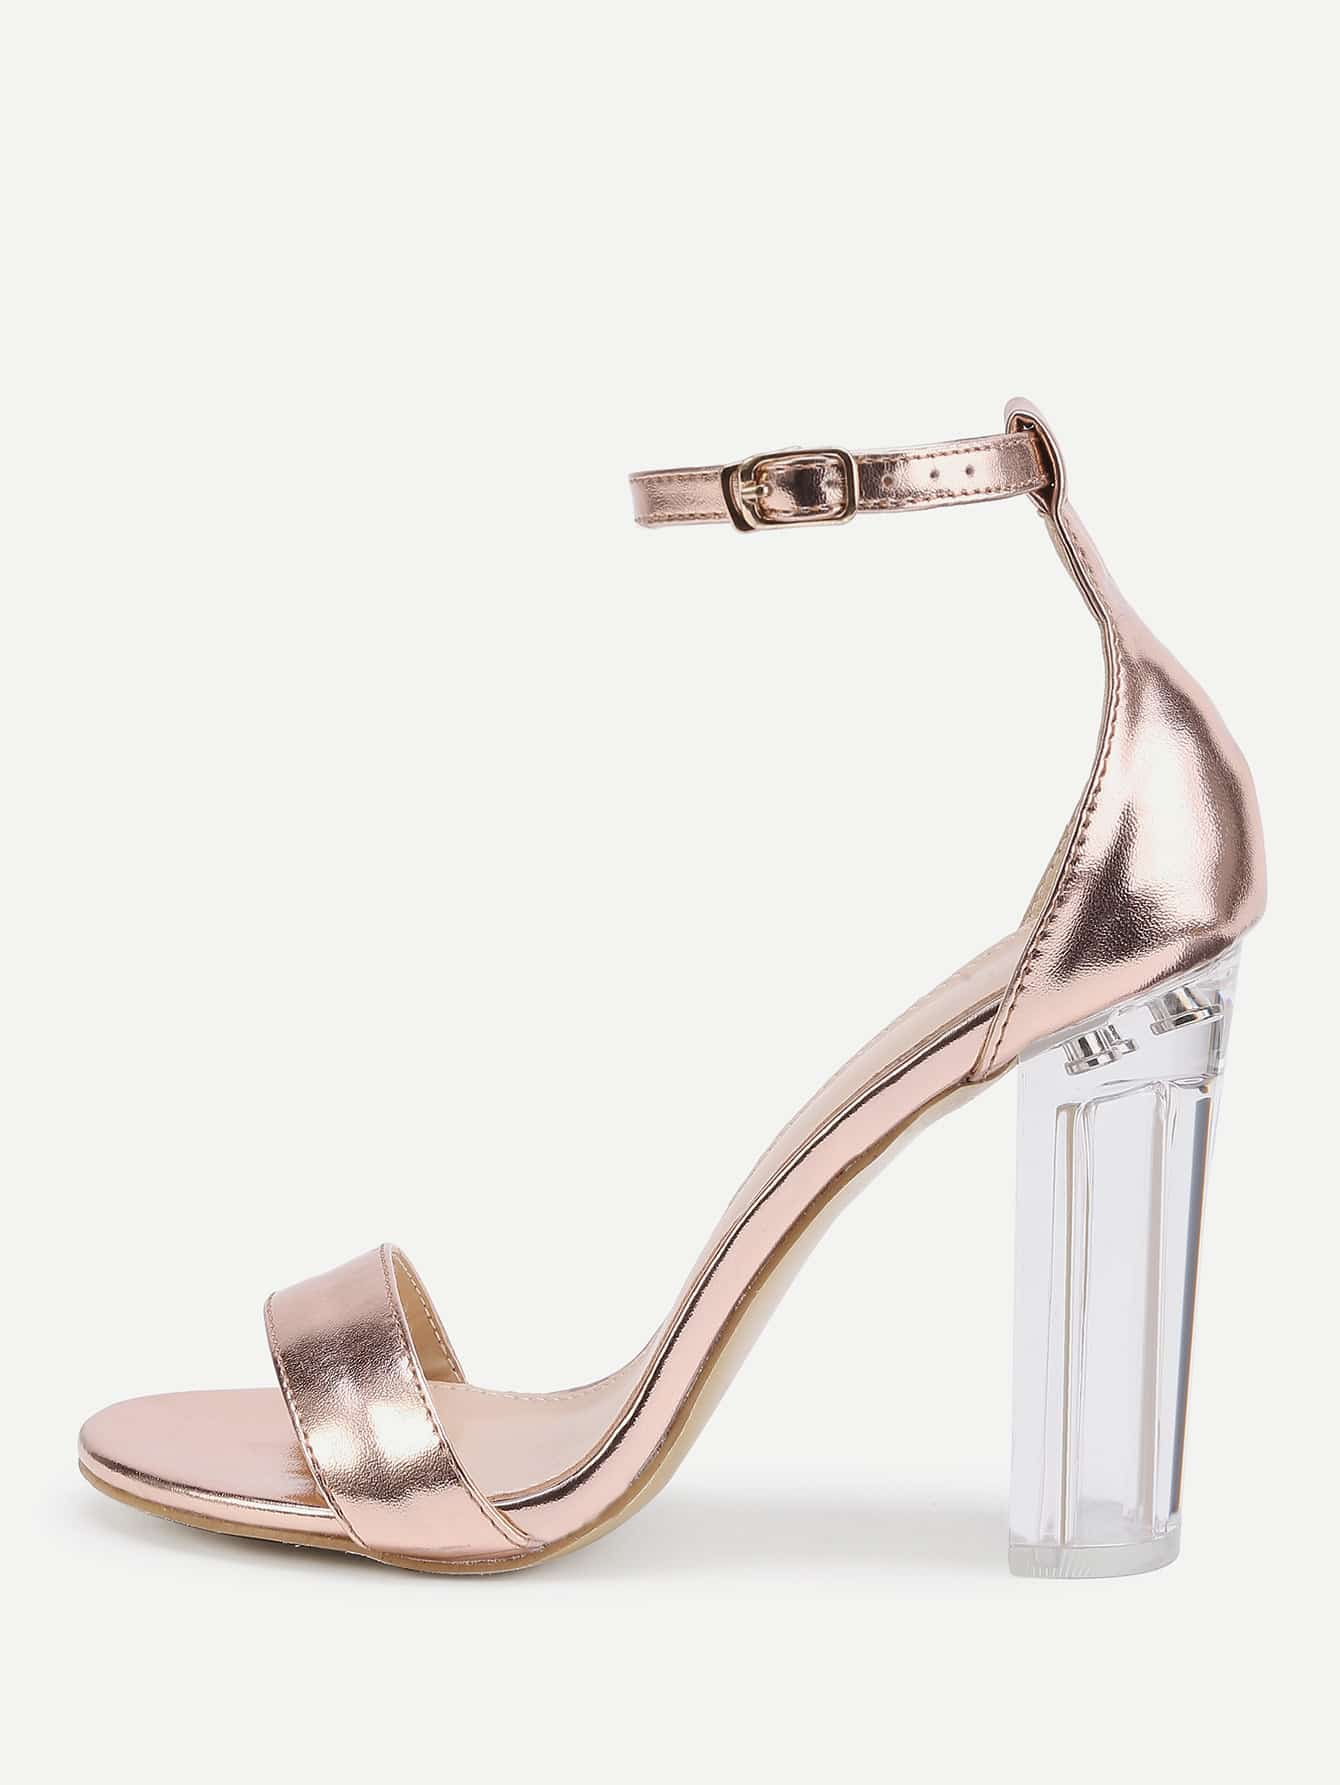 Rose Gold Lucite Heel Sandals shoes170404810